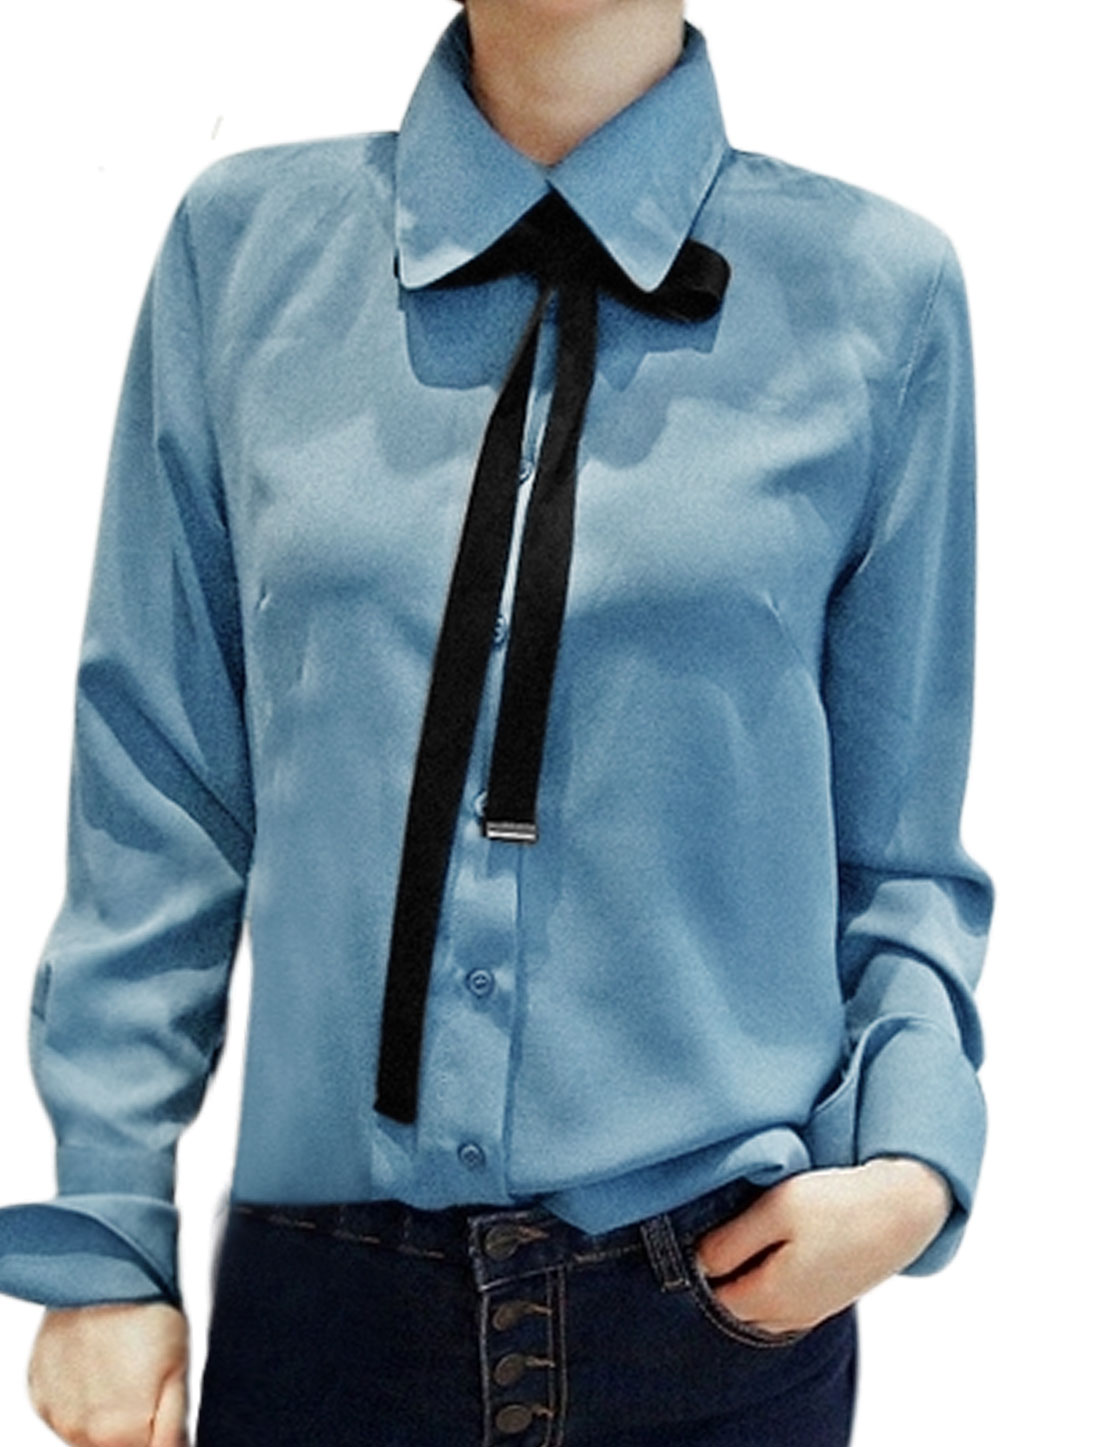 Women Long Sleeves Self Tie Bowknot Single Breasted Tunic Shirt Blue M